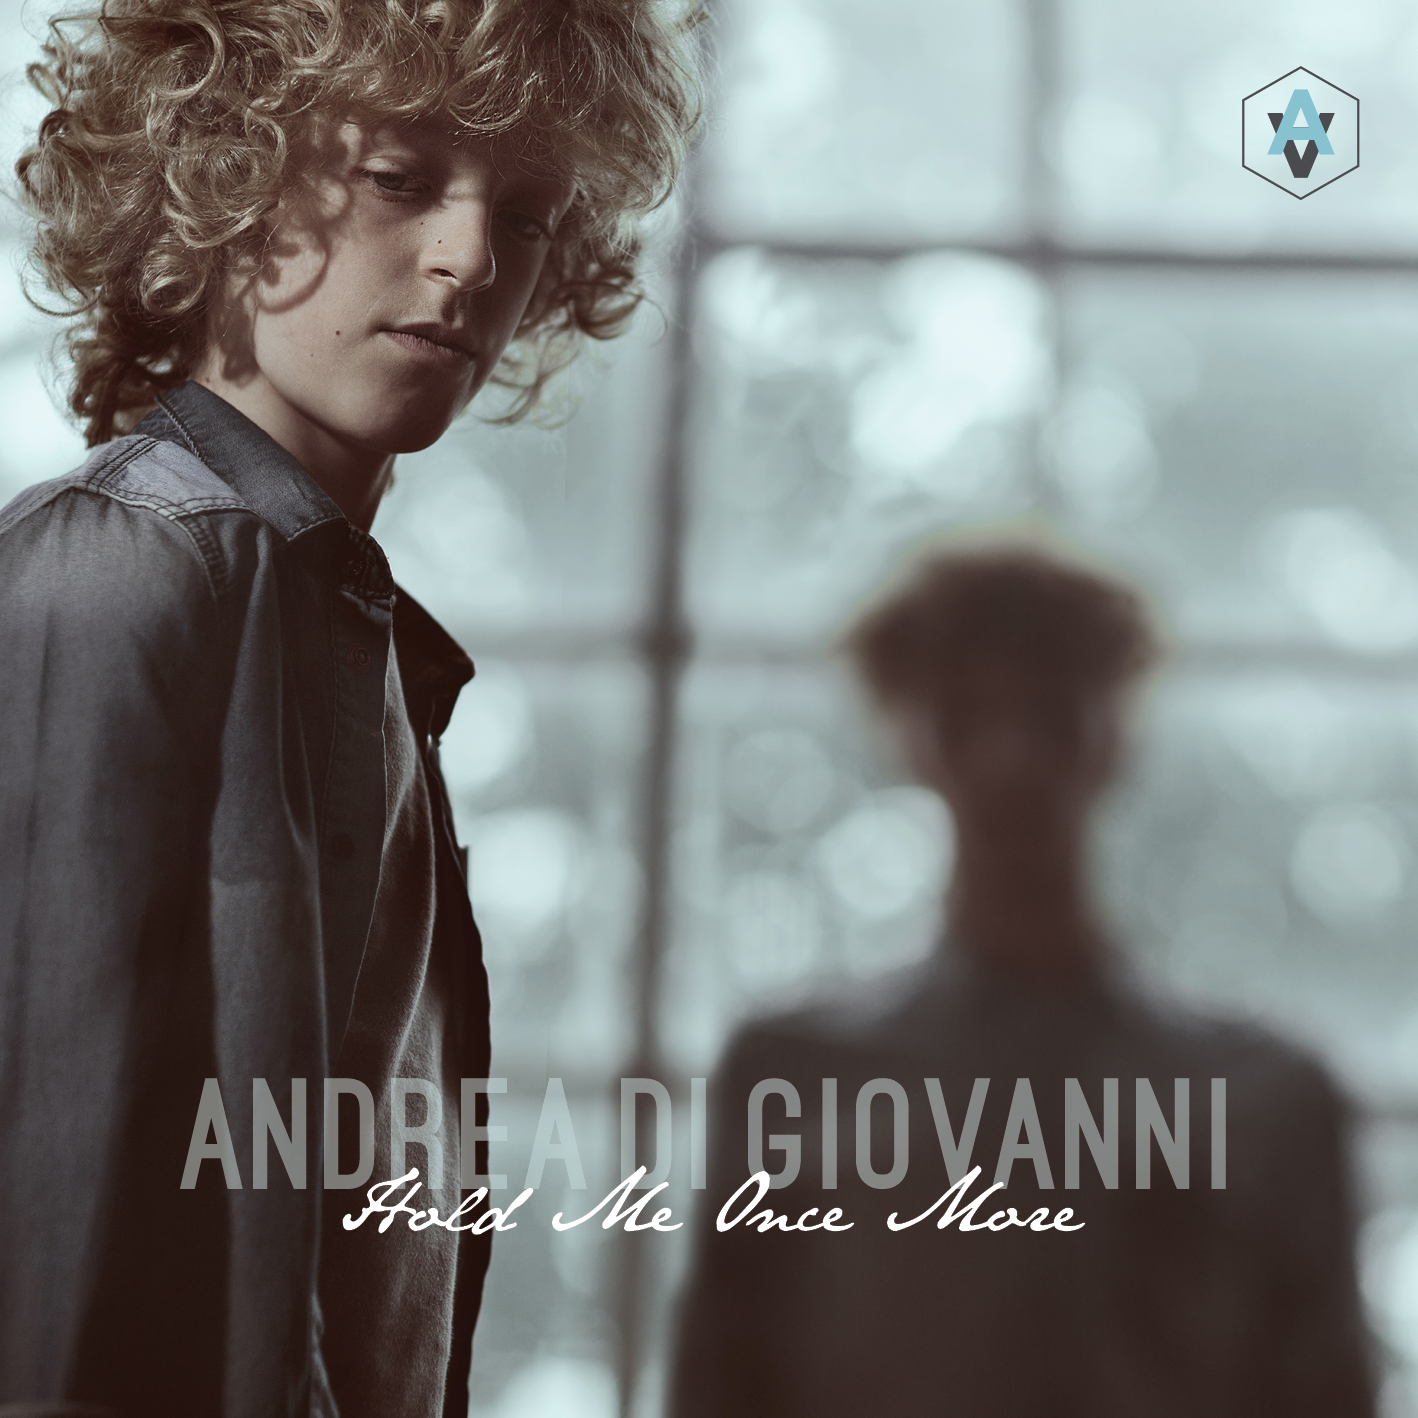 andrea-di-giovanni-hold-me-once-more-cover